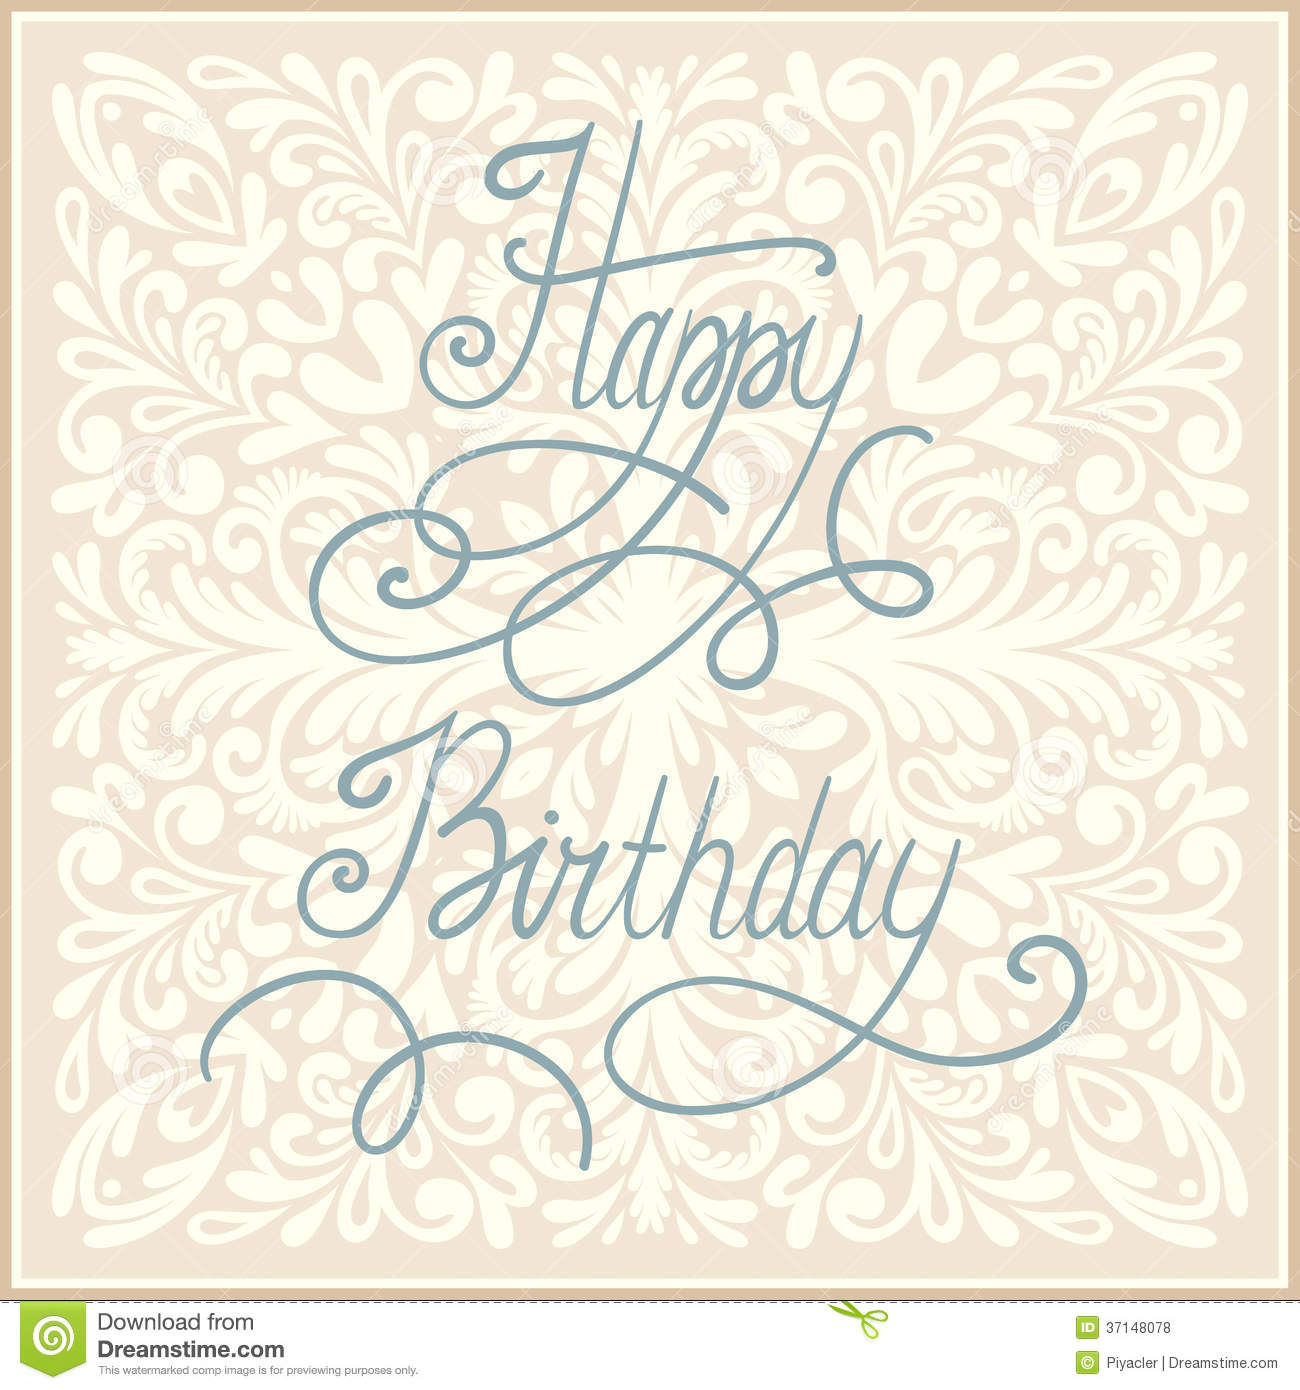 Happy birthday greeting card design stock vector illustration of happy birthday greeting card design kristyandbryce Images